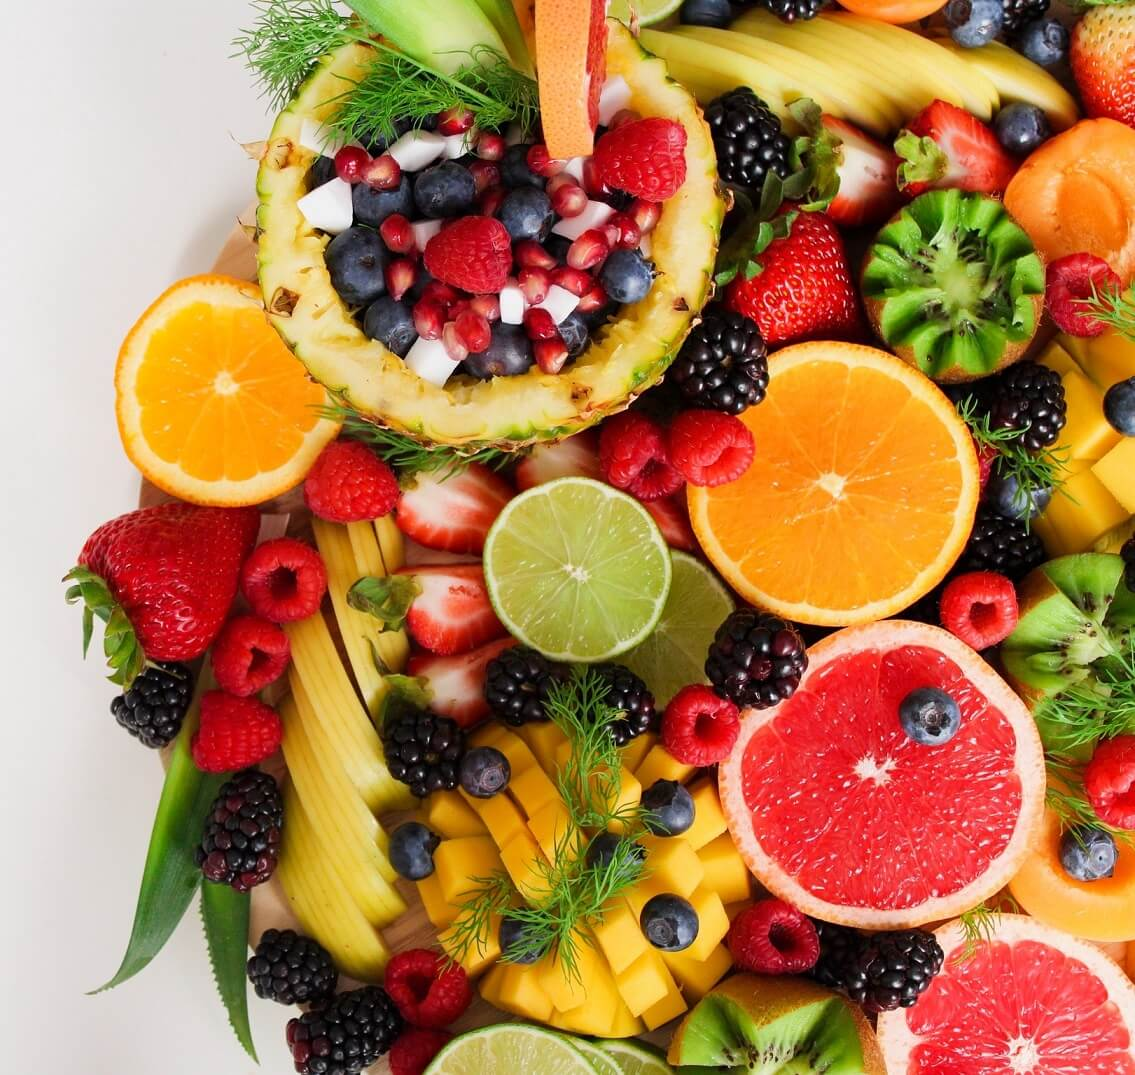 Include Fruits and Vegetables in your list